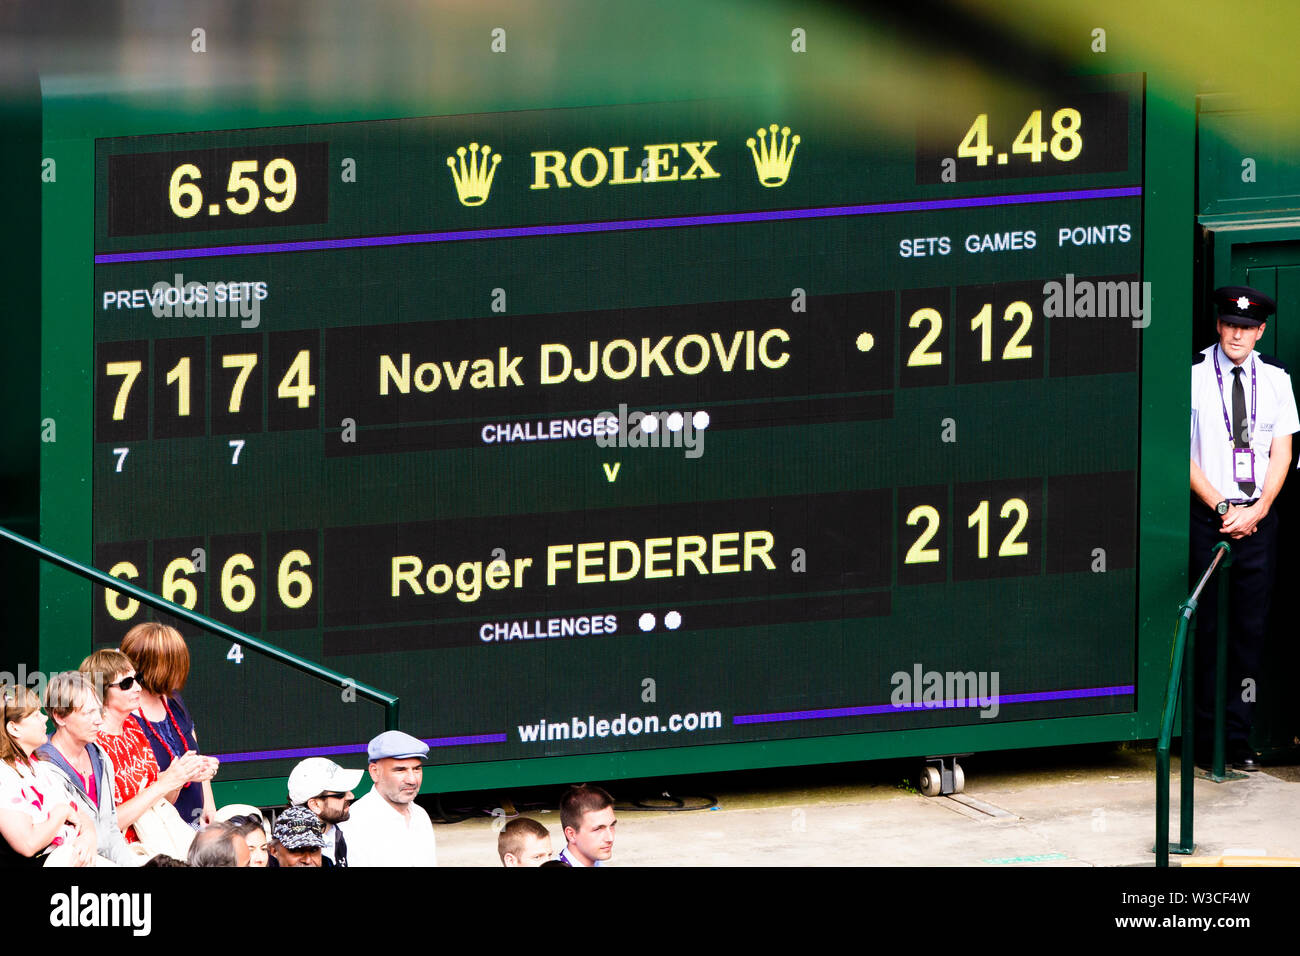 London, UK, 14th July 2019: Scoreboard before Tiebreak during the 2019 Wimbledon Men's Final at the All England Lawn Tennis and Croquet Club in London. Credit: Frank Molter/Alamy Live news Stock Photo